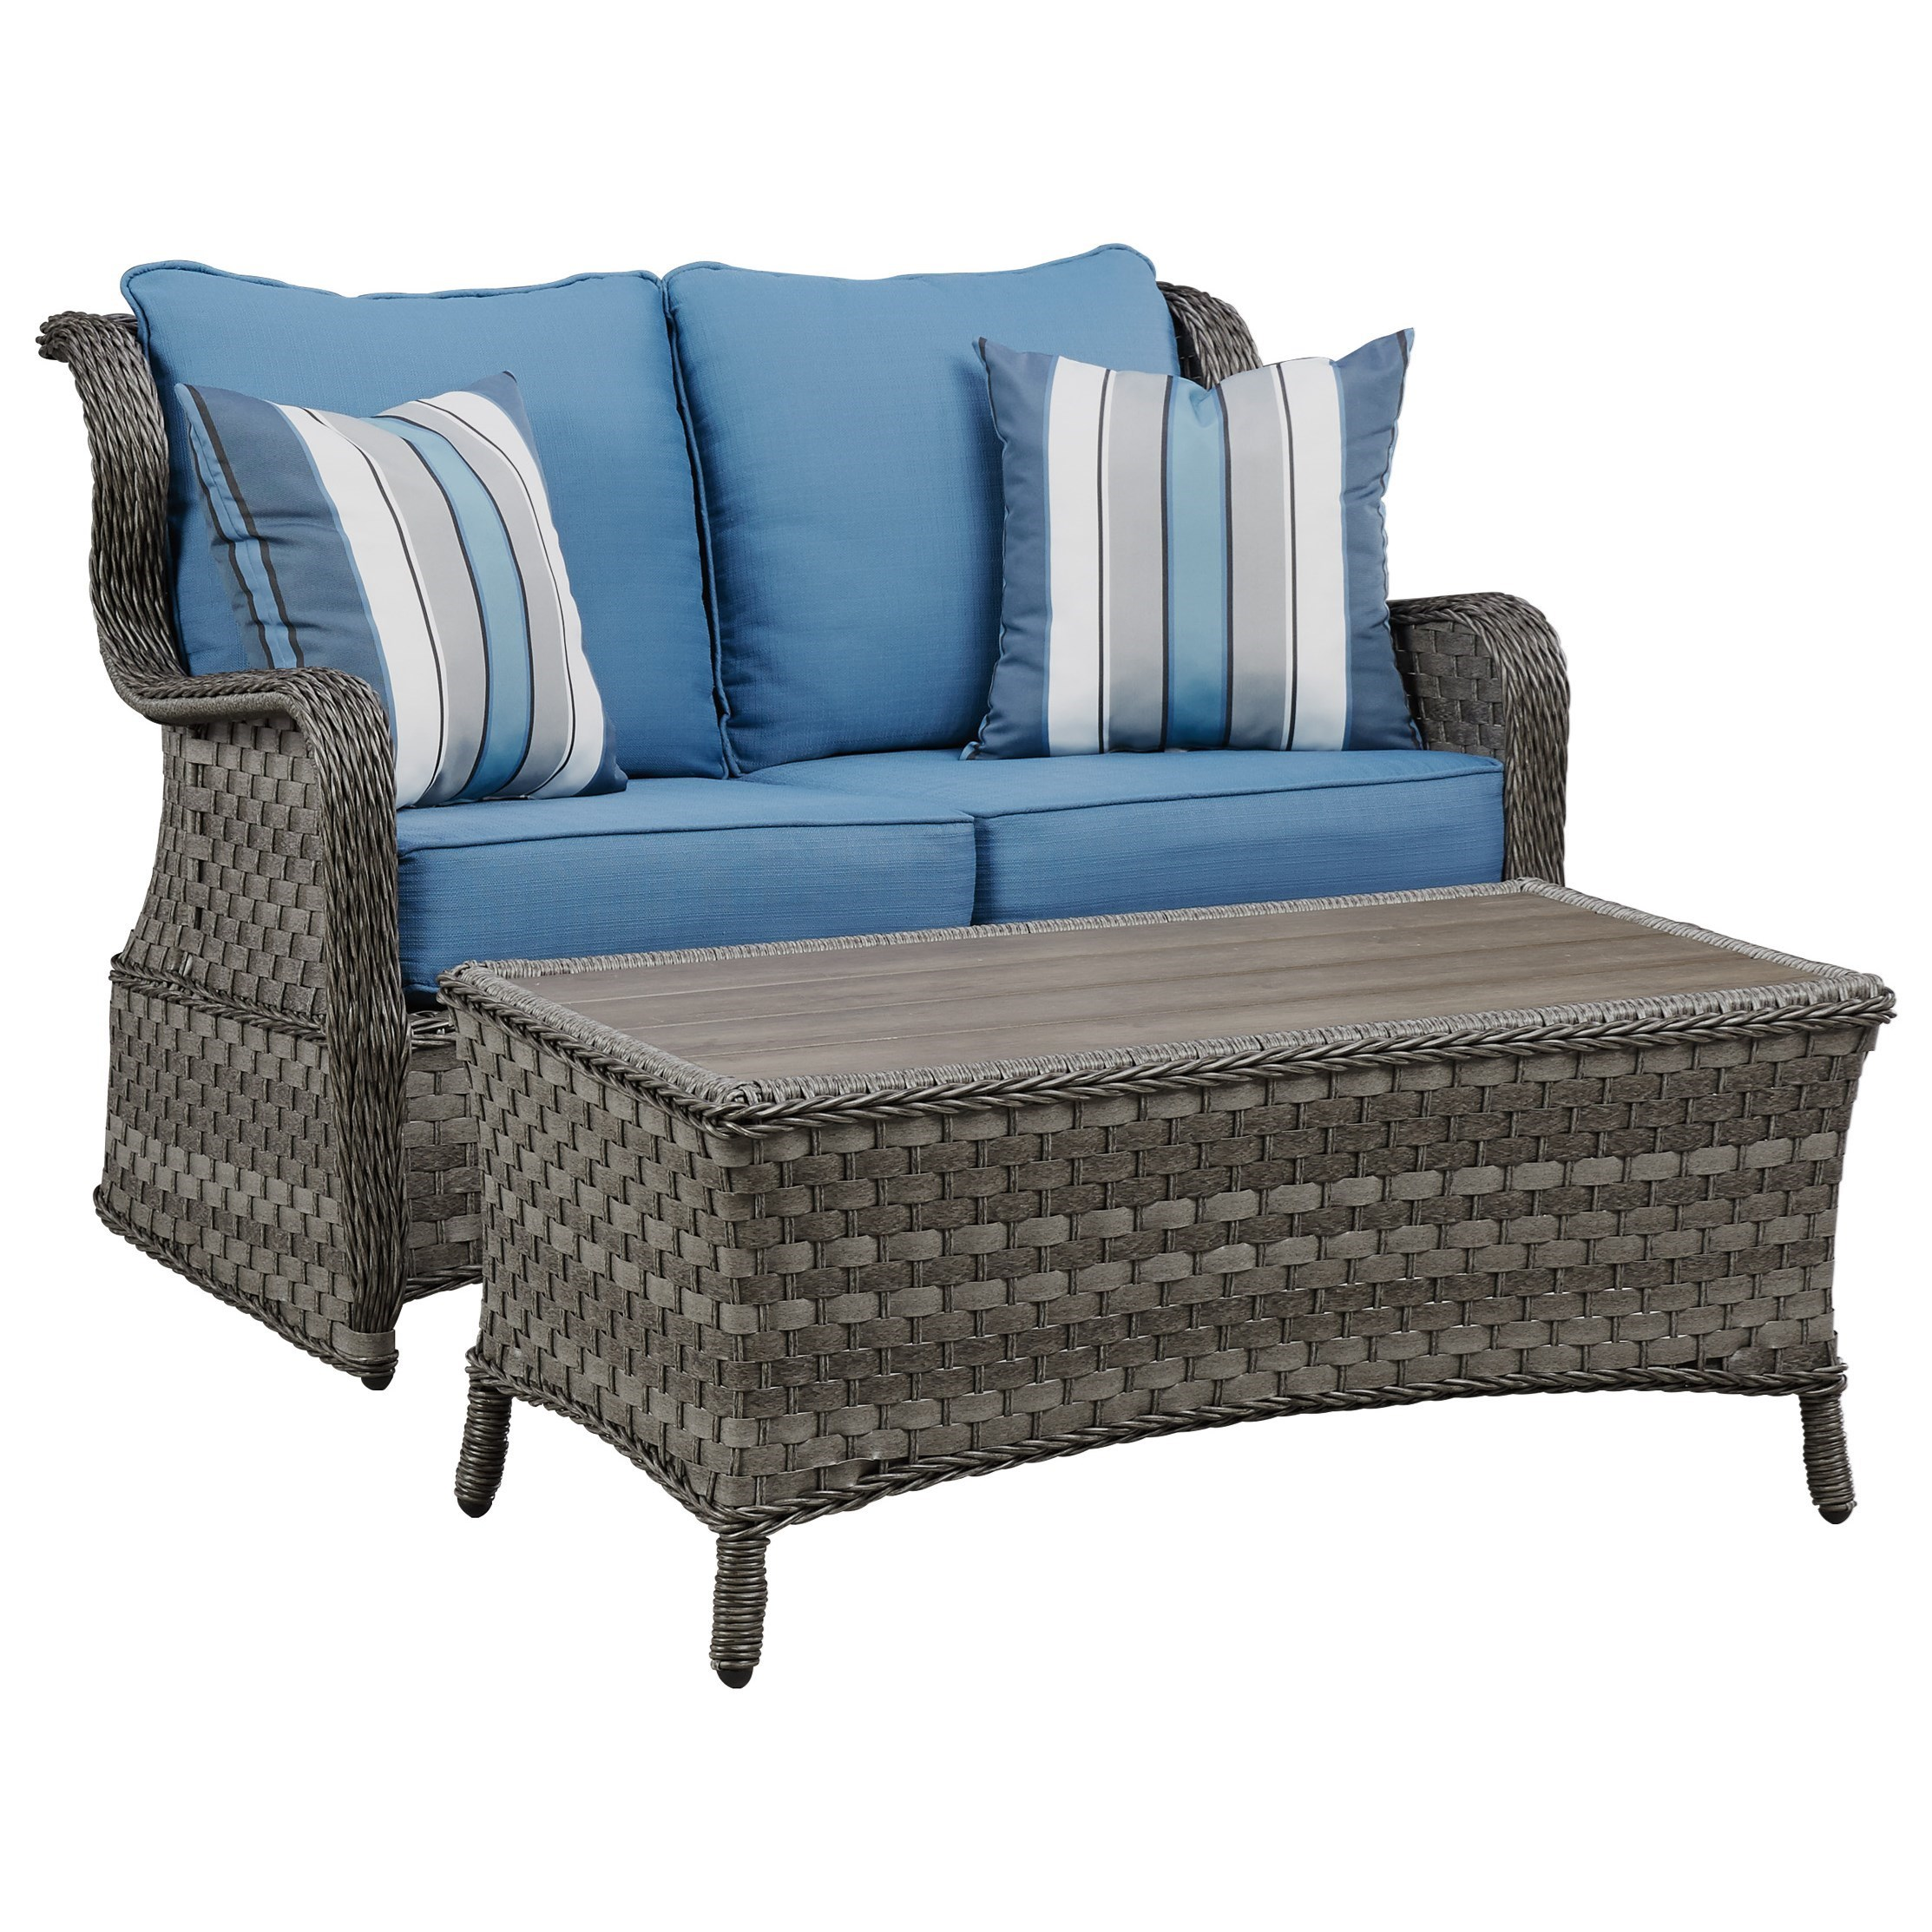 Ashley (Signature Design) Abbots Court Outdoor Loveseat Glider w/ Table - Item Number: P360-035